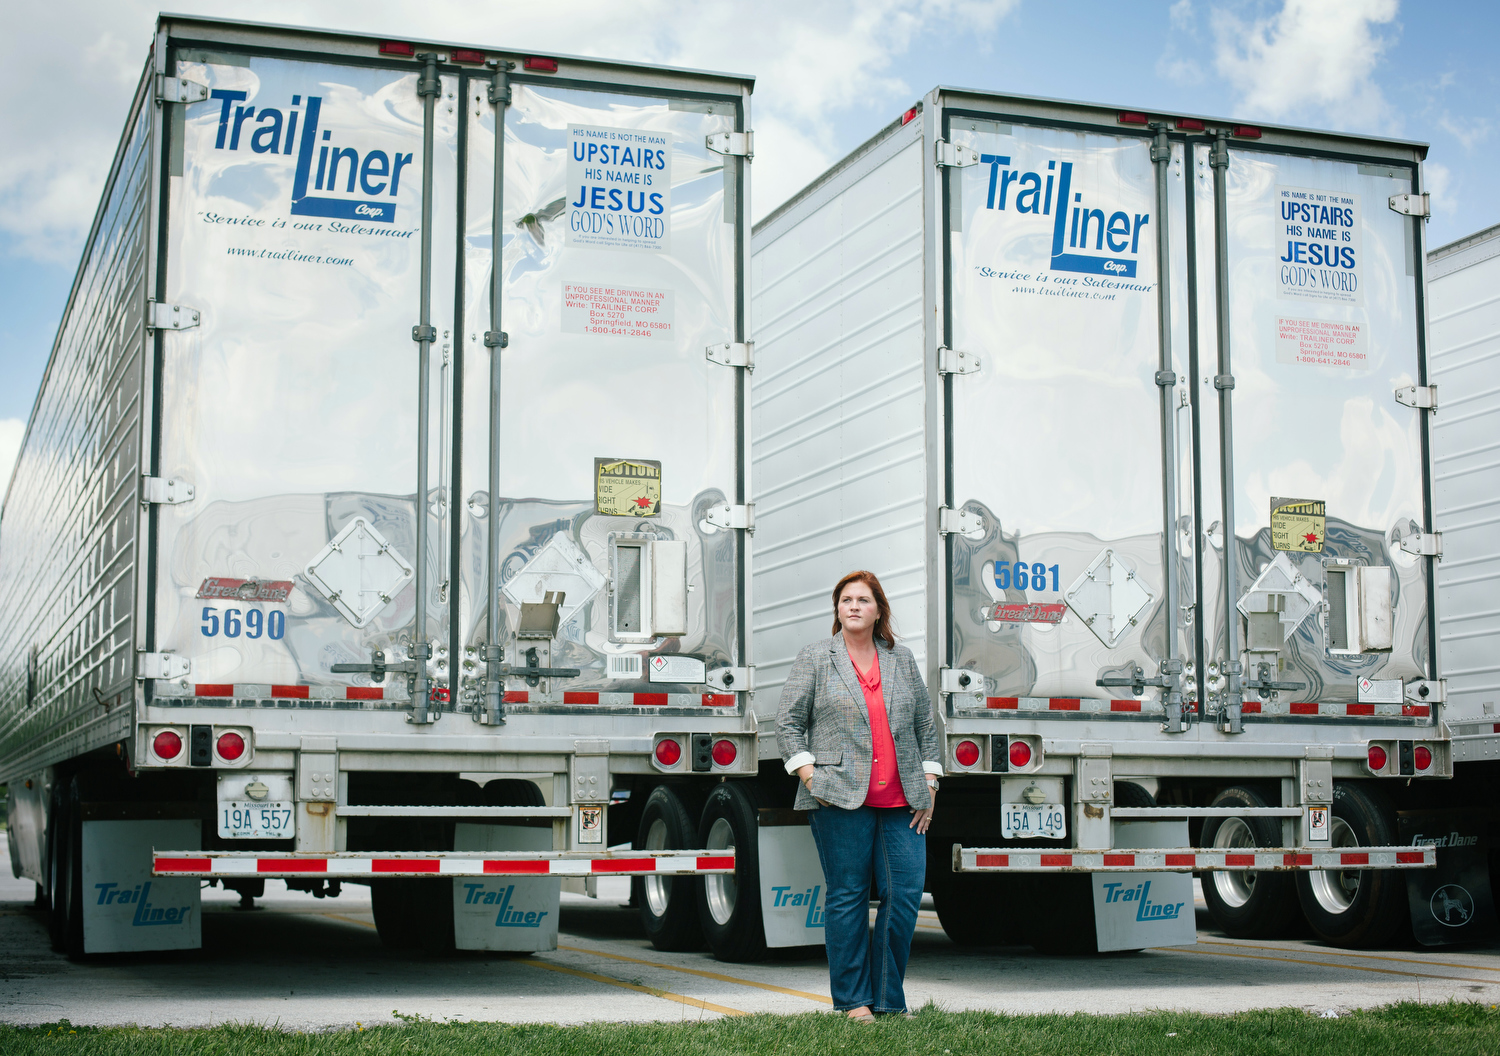 Amber Edmondson, president of Trailiner, at the company's facility in Springfield, Mo. on May 18, 2017. Photo by Brad Zweerink.